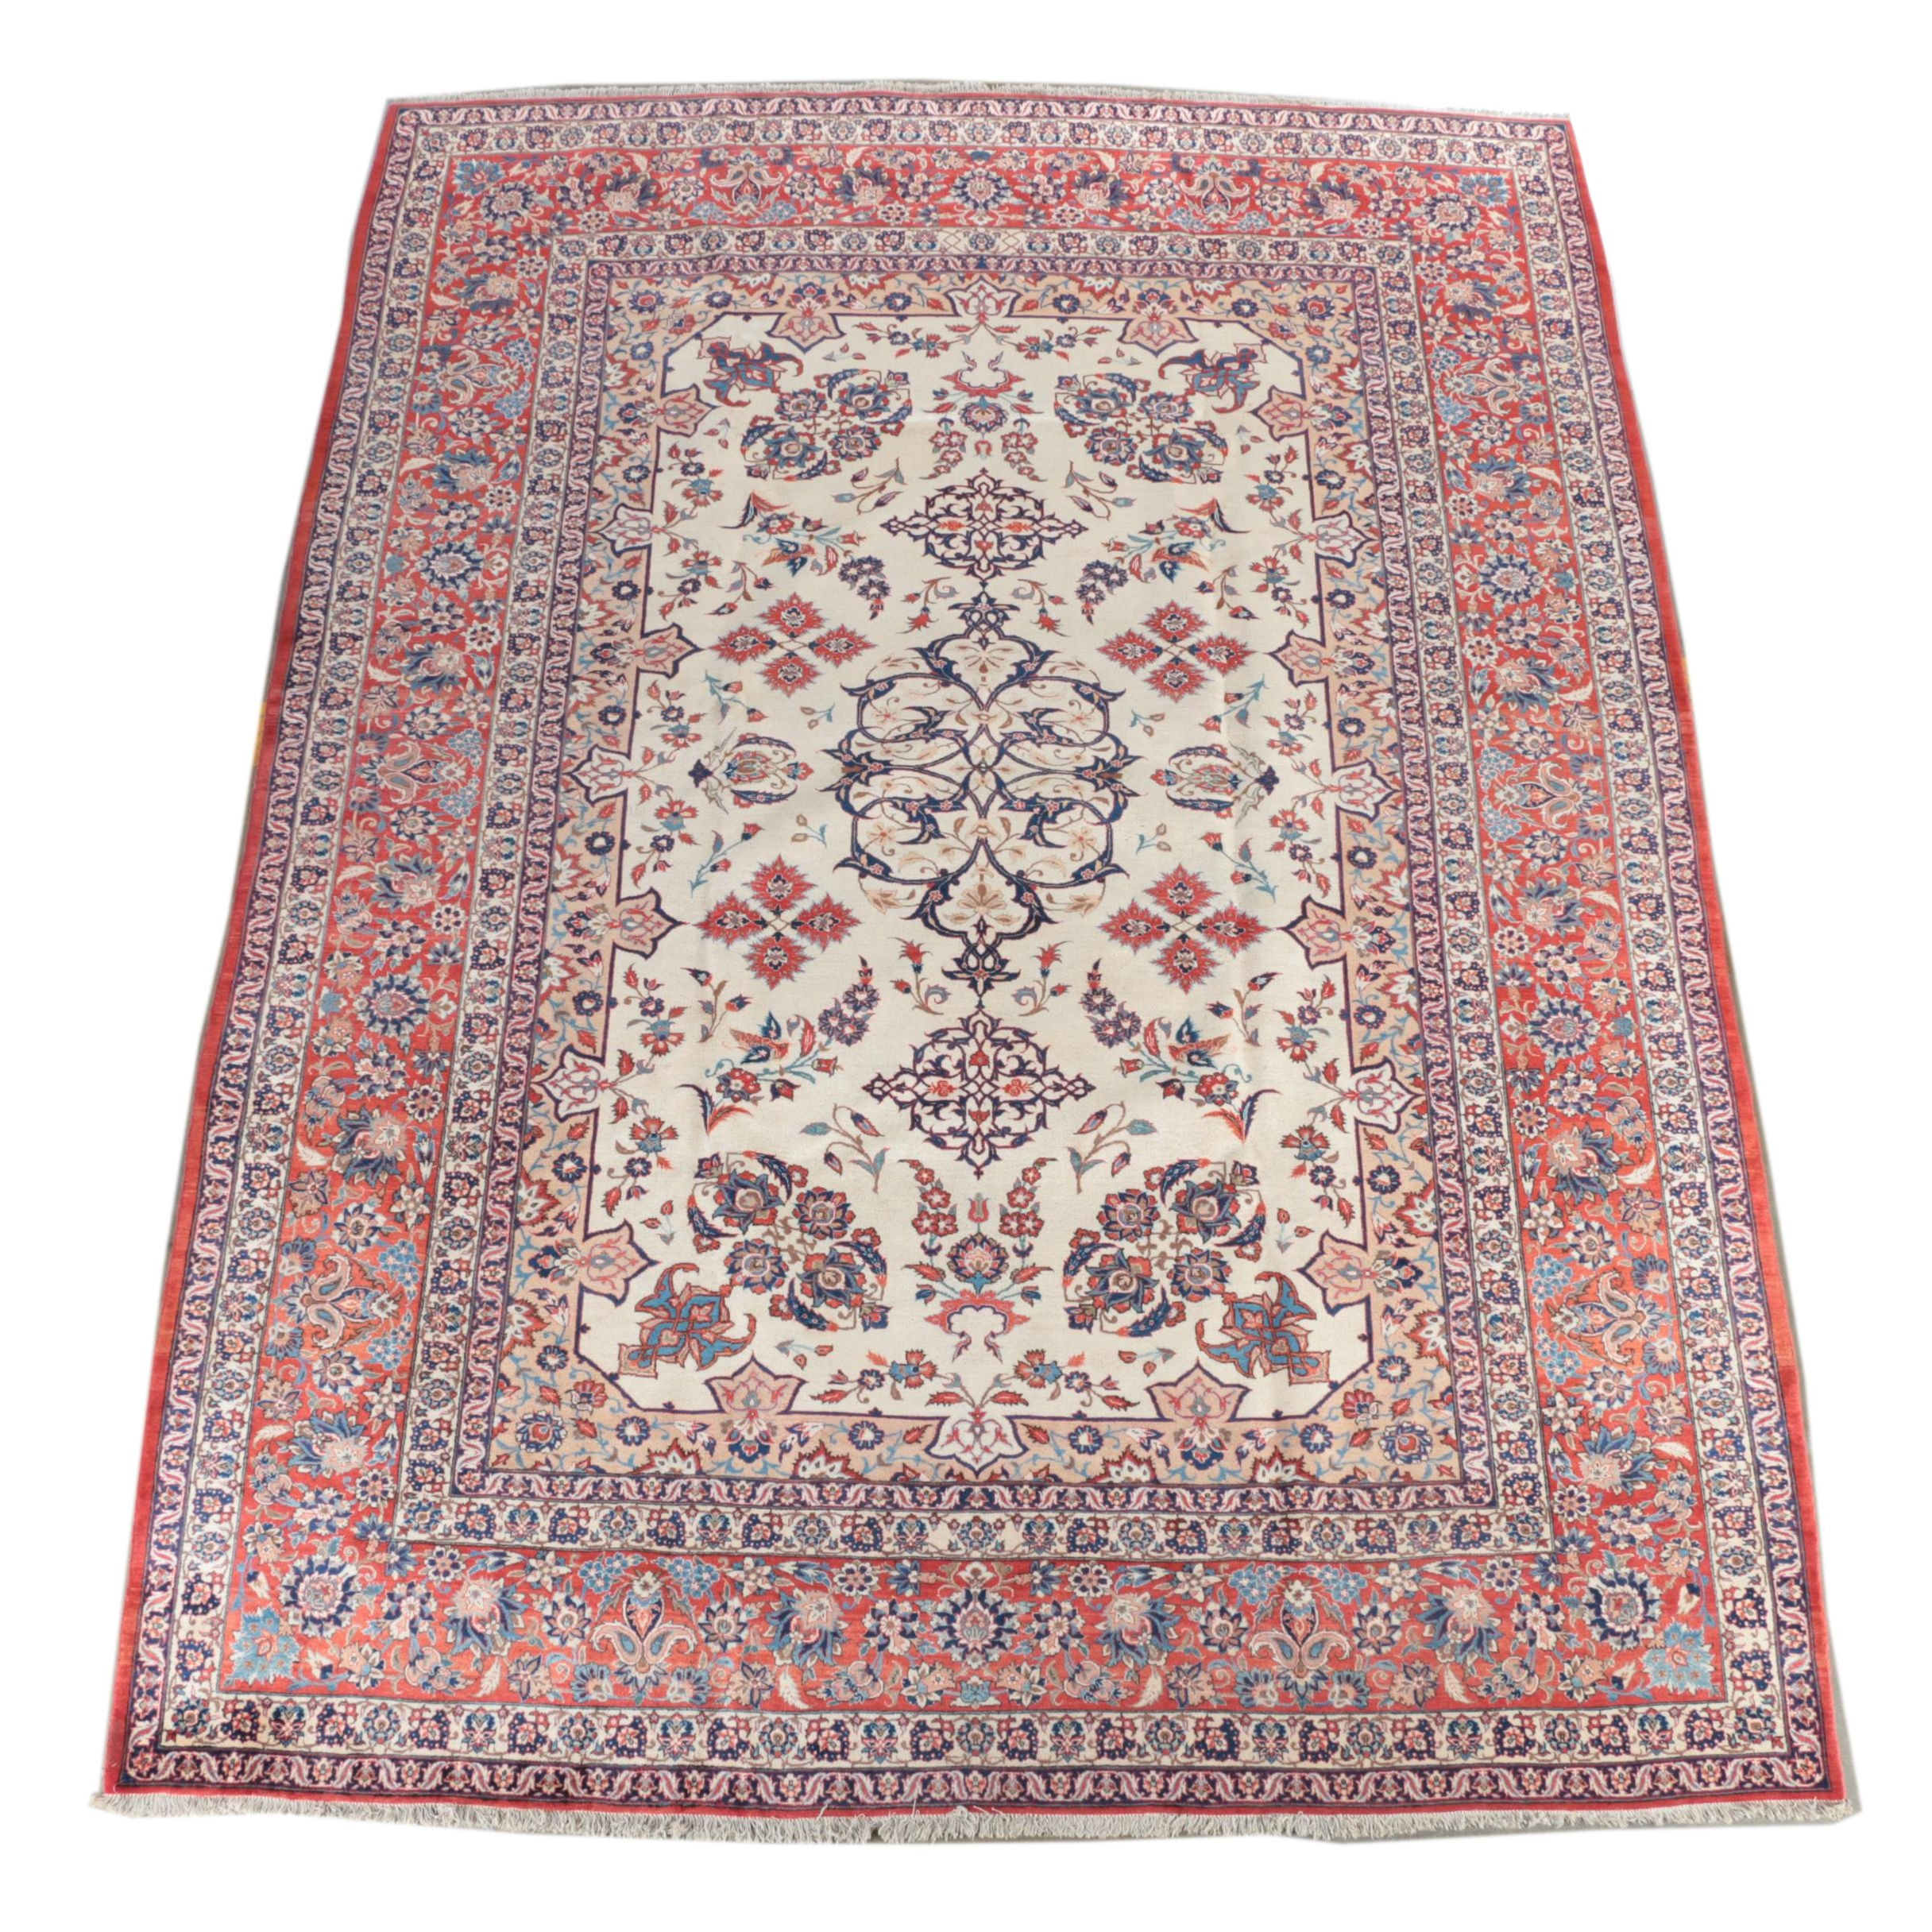 Very Fine Hand-Knotted Isfahan Room Size Rug